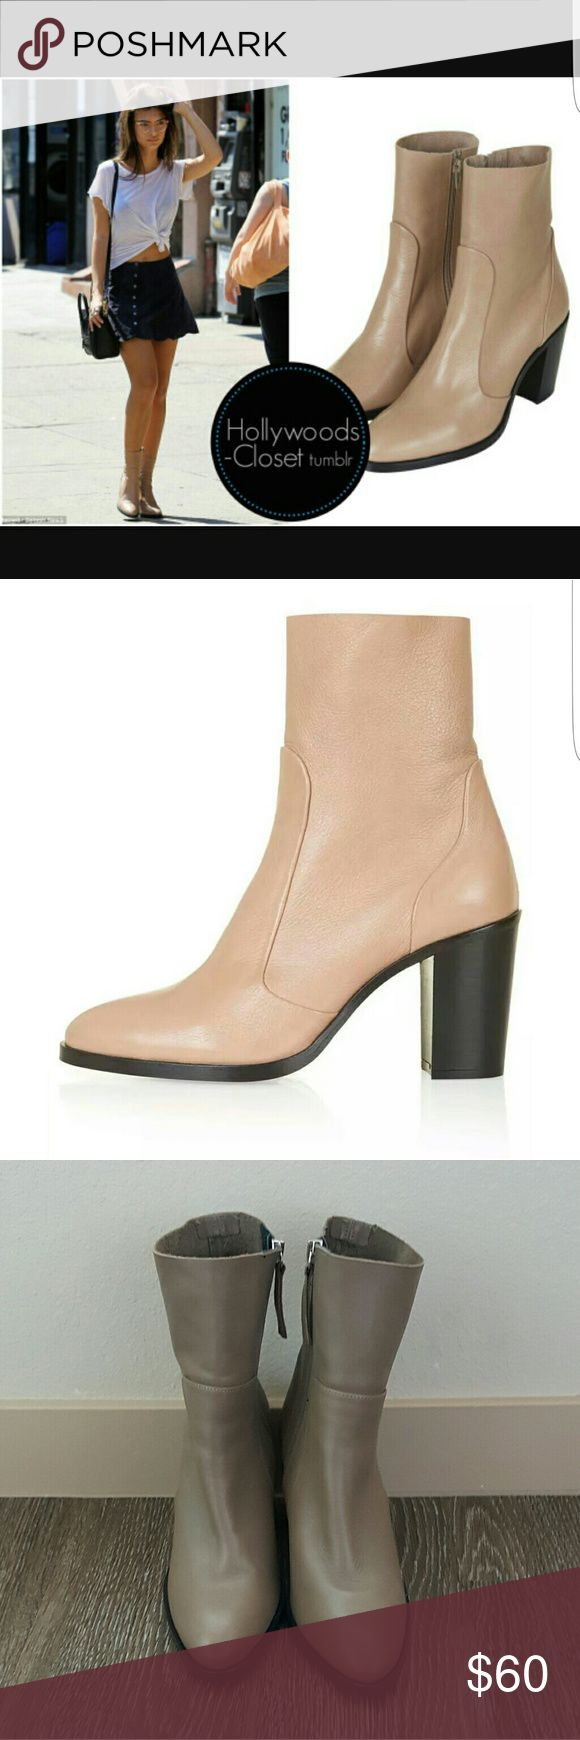 New Topshop Magnificent beige ankle boots Topshop magnificent beige ankle boots size 38 new without tag used as store display never worn outside. Walk tall with a modern-classic ankle boot. This pair comes with a rounded point toe and sock detail. Heel height - 3.5 inches. Main - 100% Leather, Lining - 100% Pigskin Leather. Specialist leather clean only. Get these boots while you can worn here by Emily Ratajkowski and Selena Gomez in blue! Topshop Shoes Ankle Boots & Booties